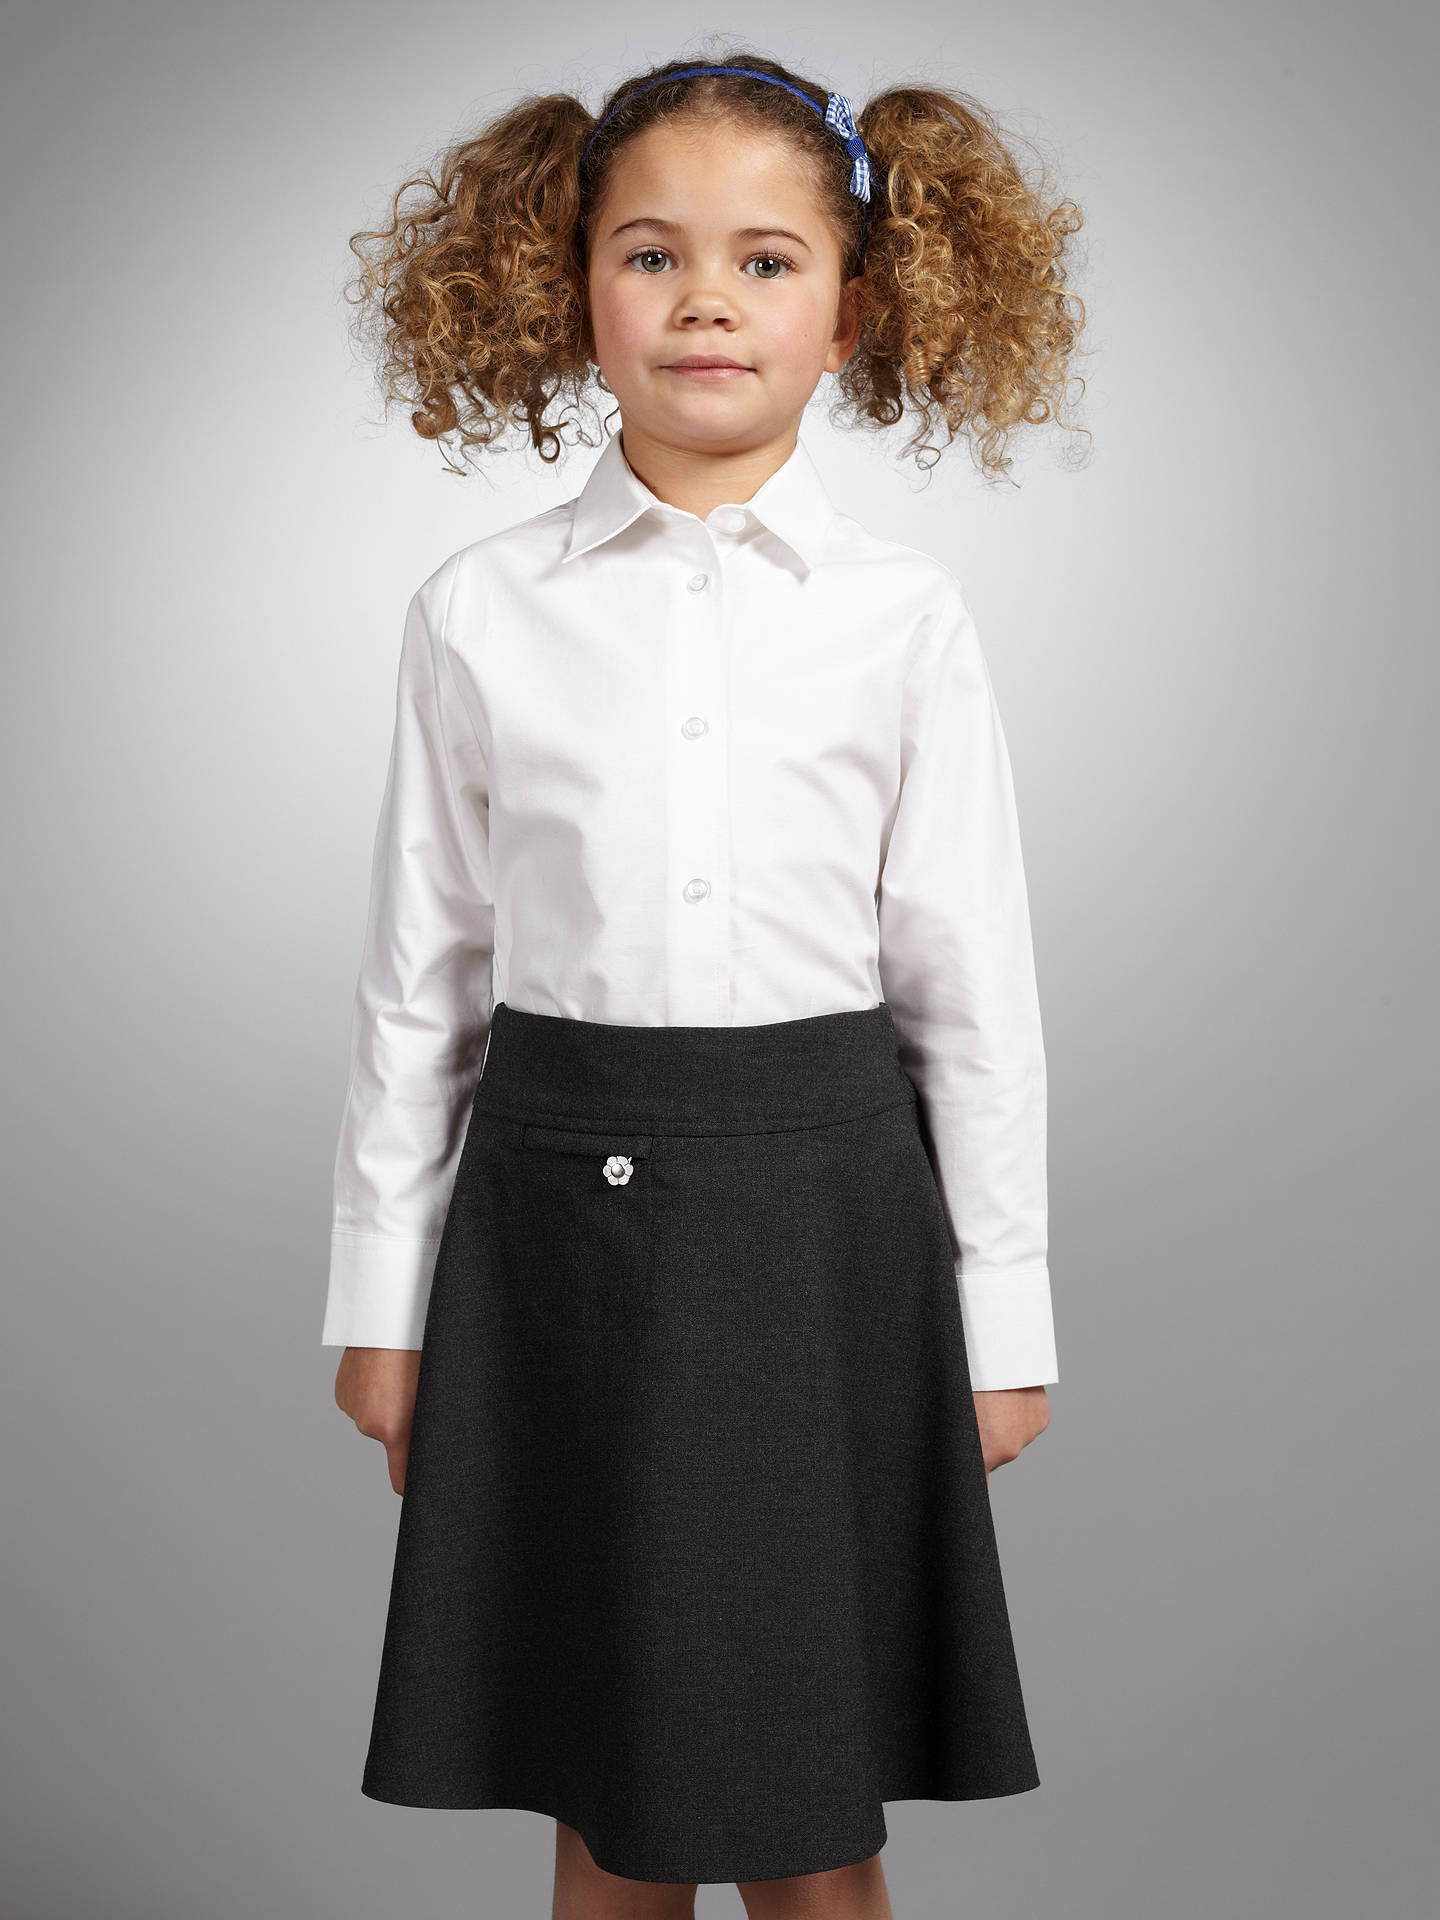 ef36bf63f ... Buy John Lewis & Partners Girls' Long Sleeve Fitted Pure Cotton School  Blouse, White ...